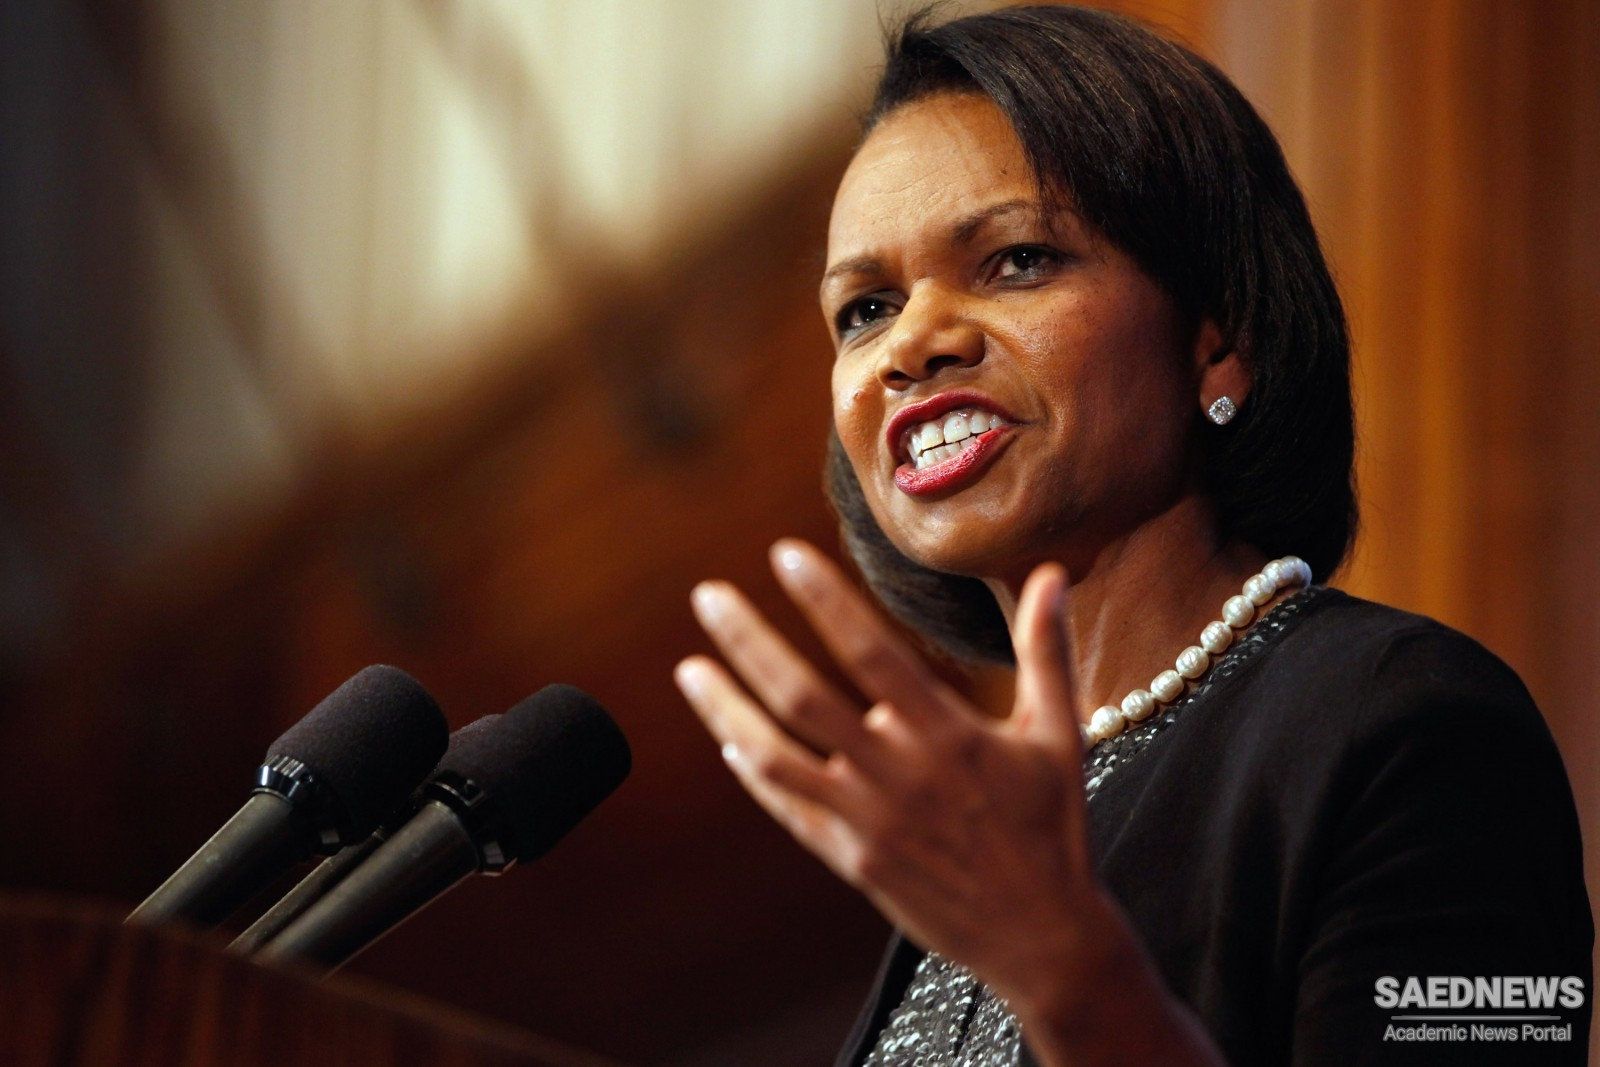 Condoleezza Rice laments US losing 'eyes and ears' in Afghanistan